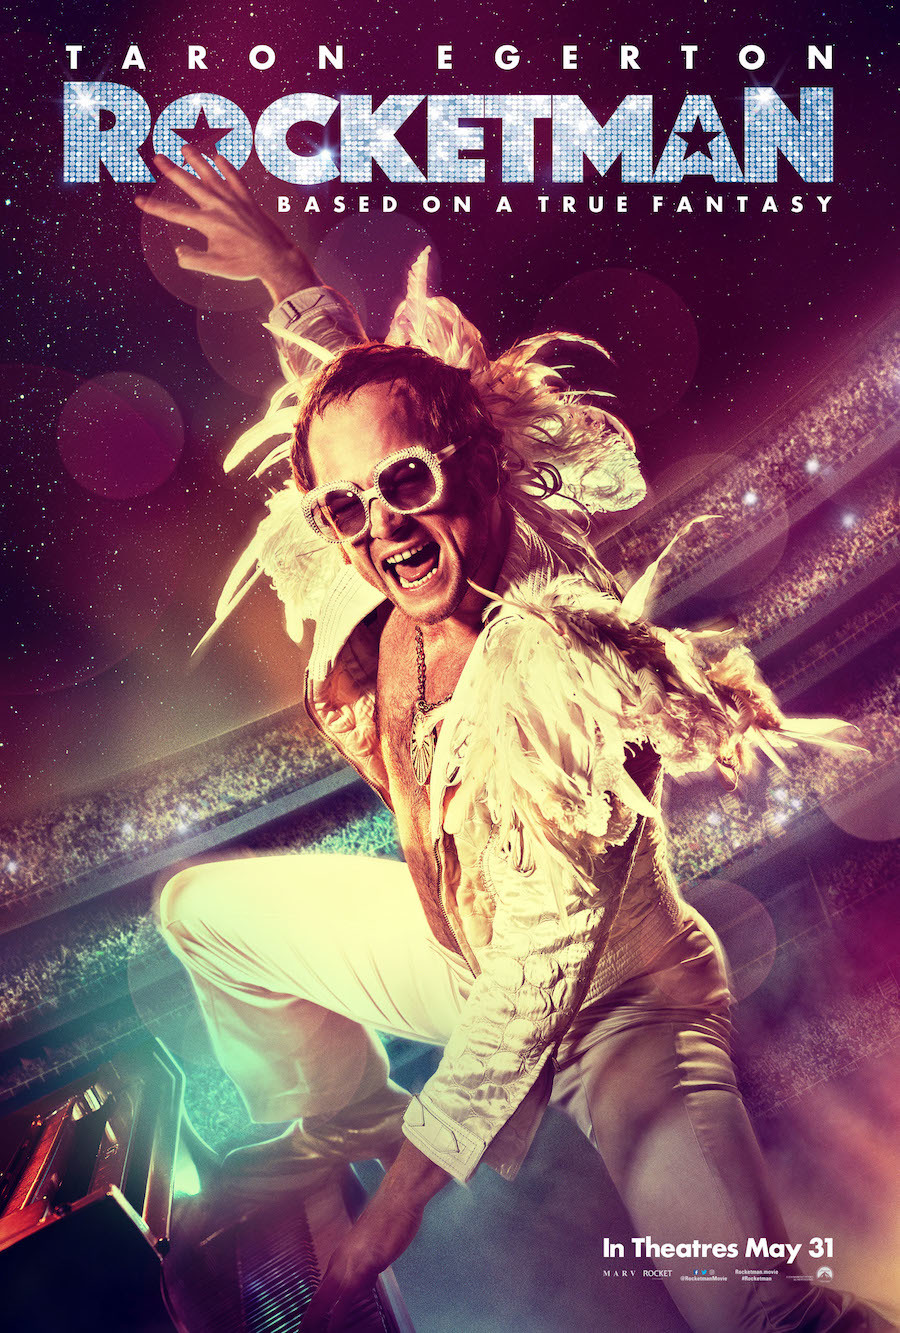 Rocketman , directed by Dexter Fletcher, is an artistic triumph that largely avoids standard musical biopic cliches.